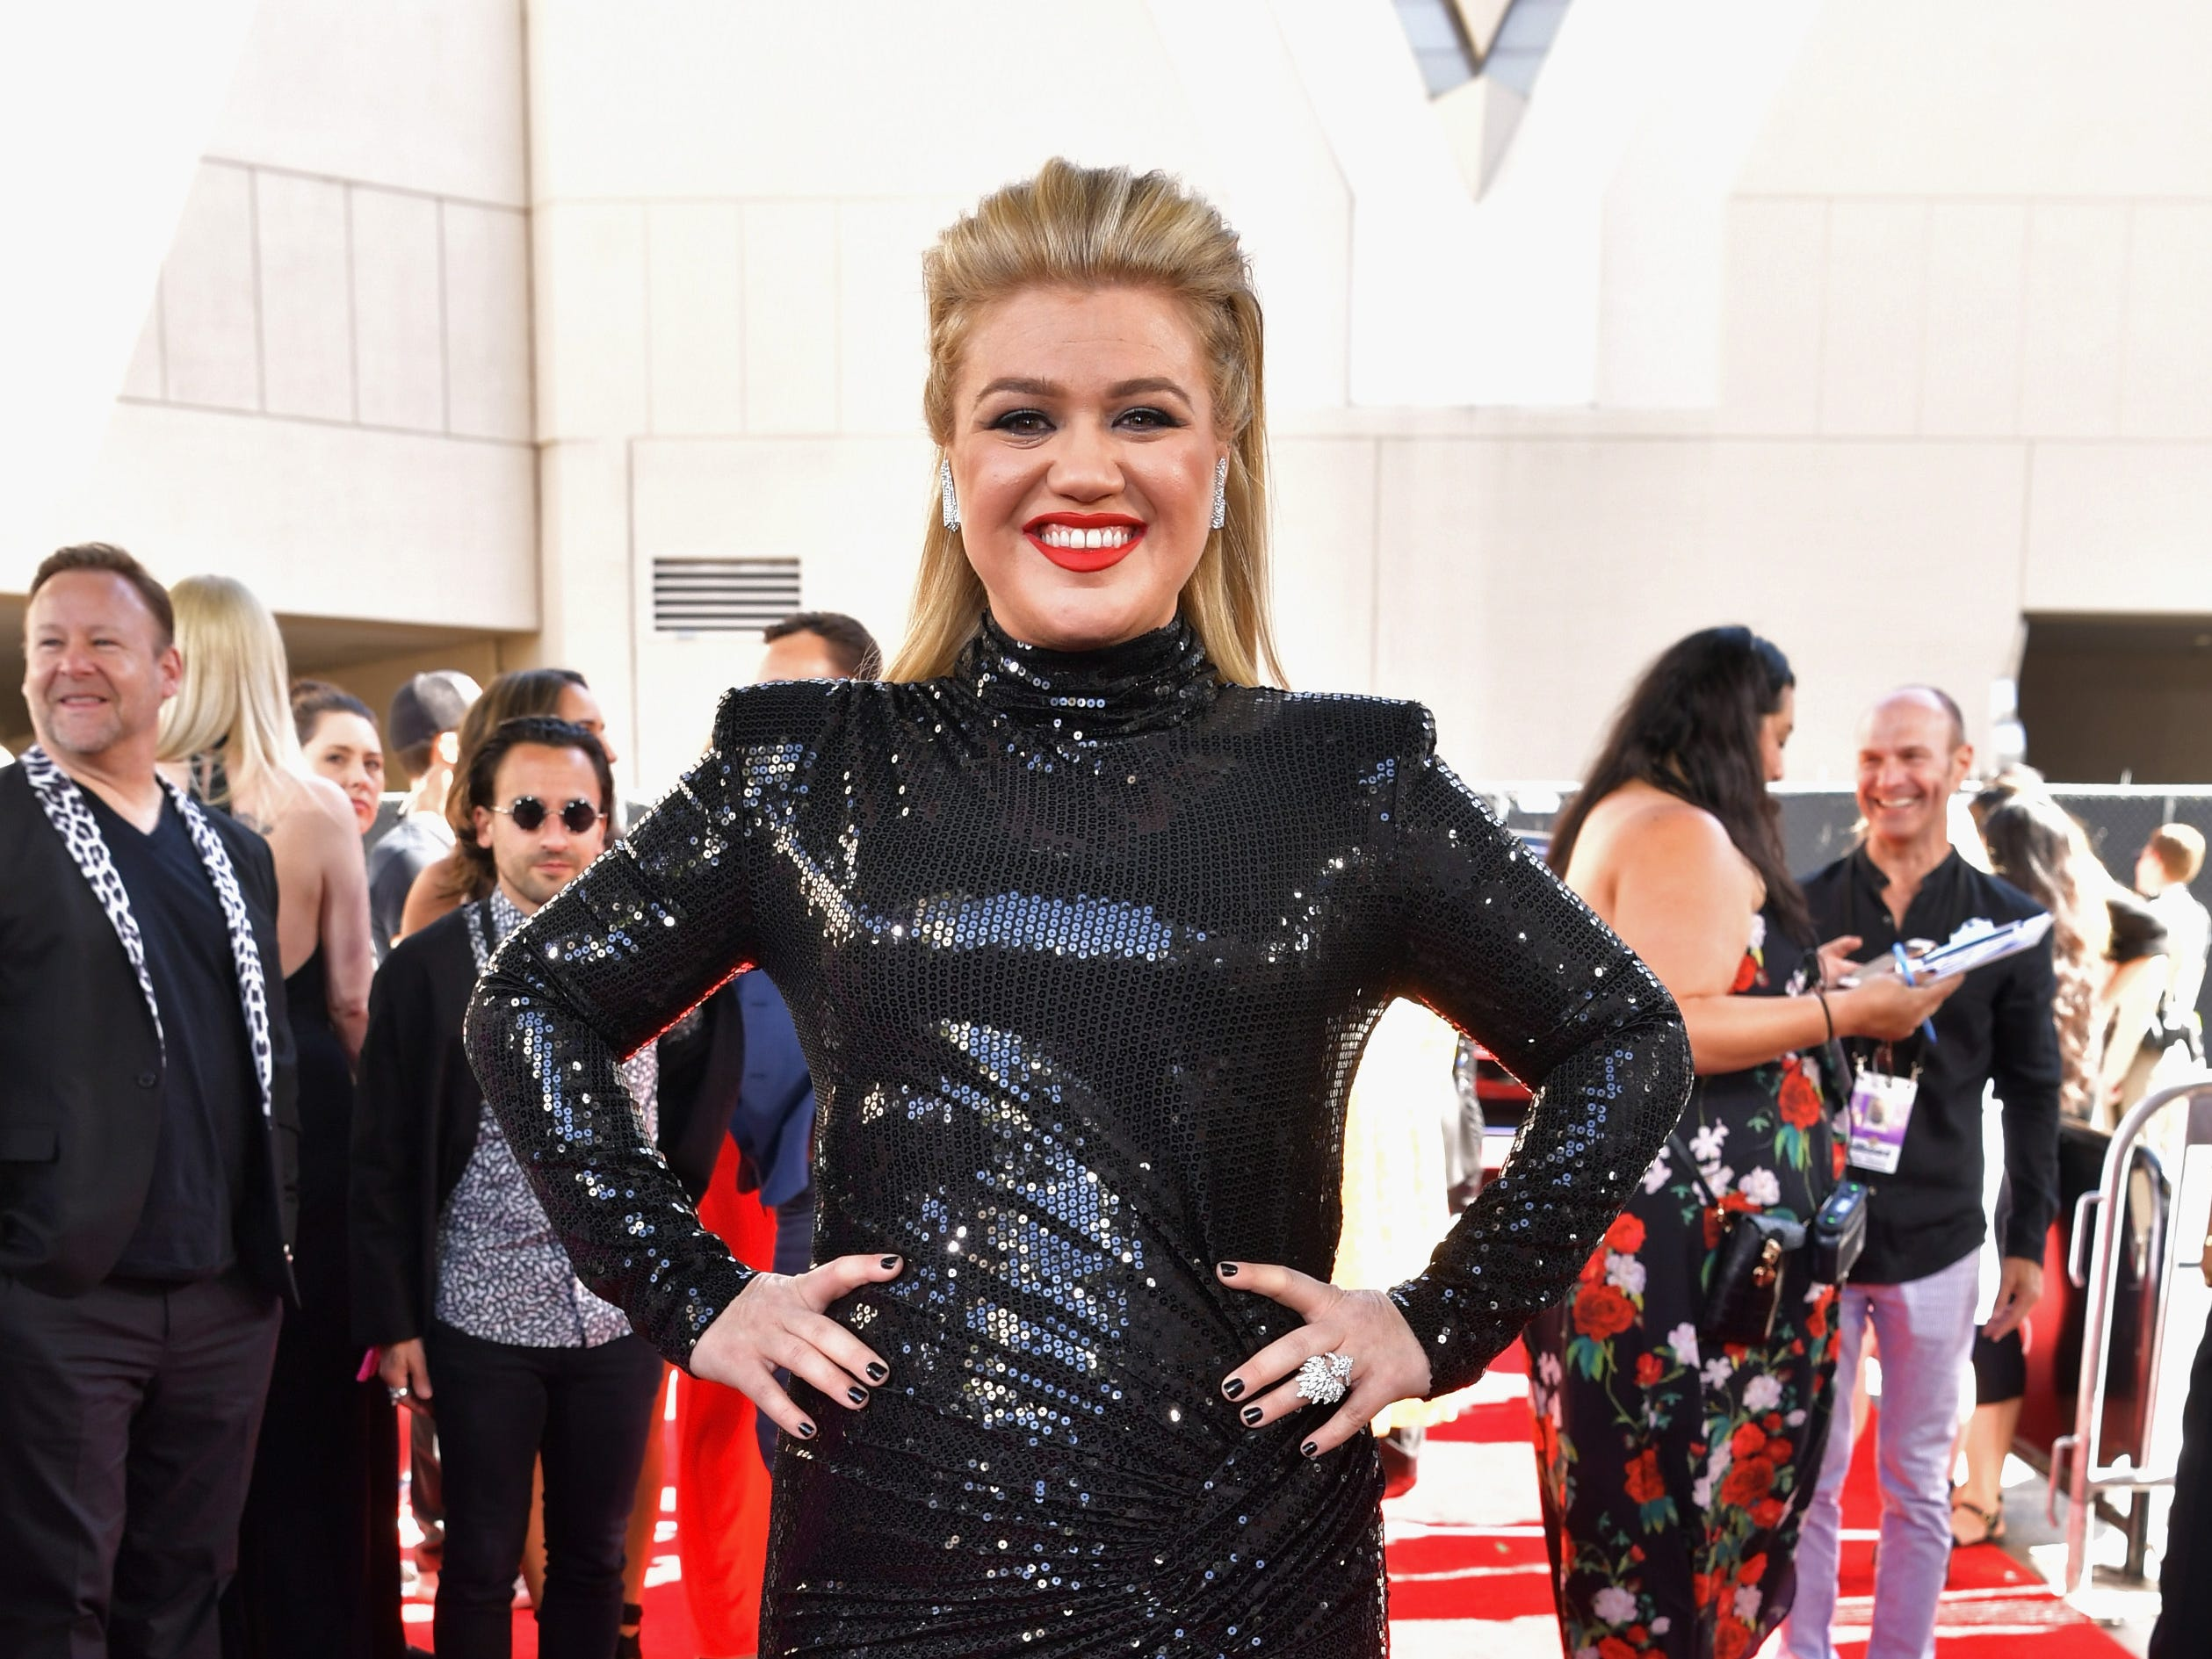 Kelly Clarkson attends the 2019 Billboard Music Awards at MGM Grand Garden Arena on May 1, 2019 in Las Vegas, Nevada.